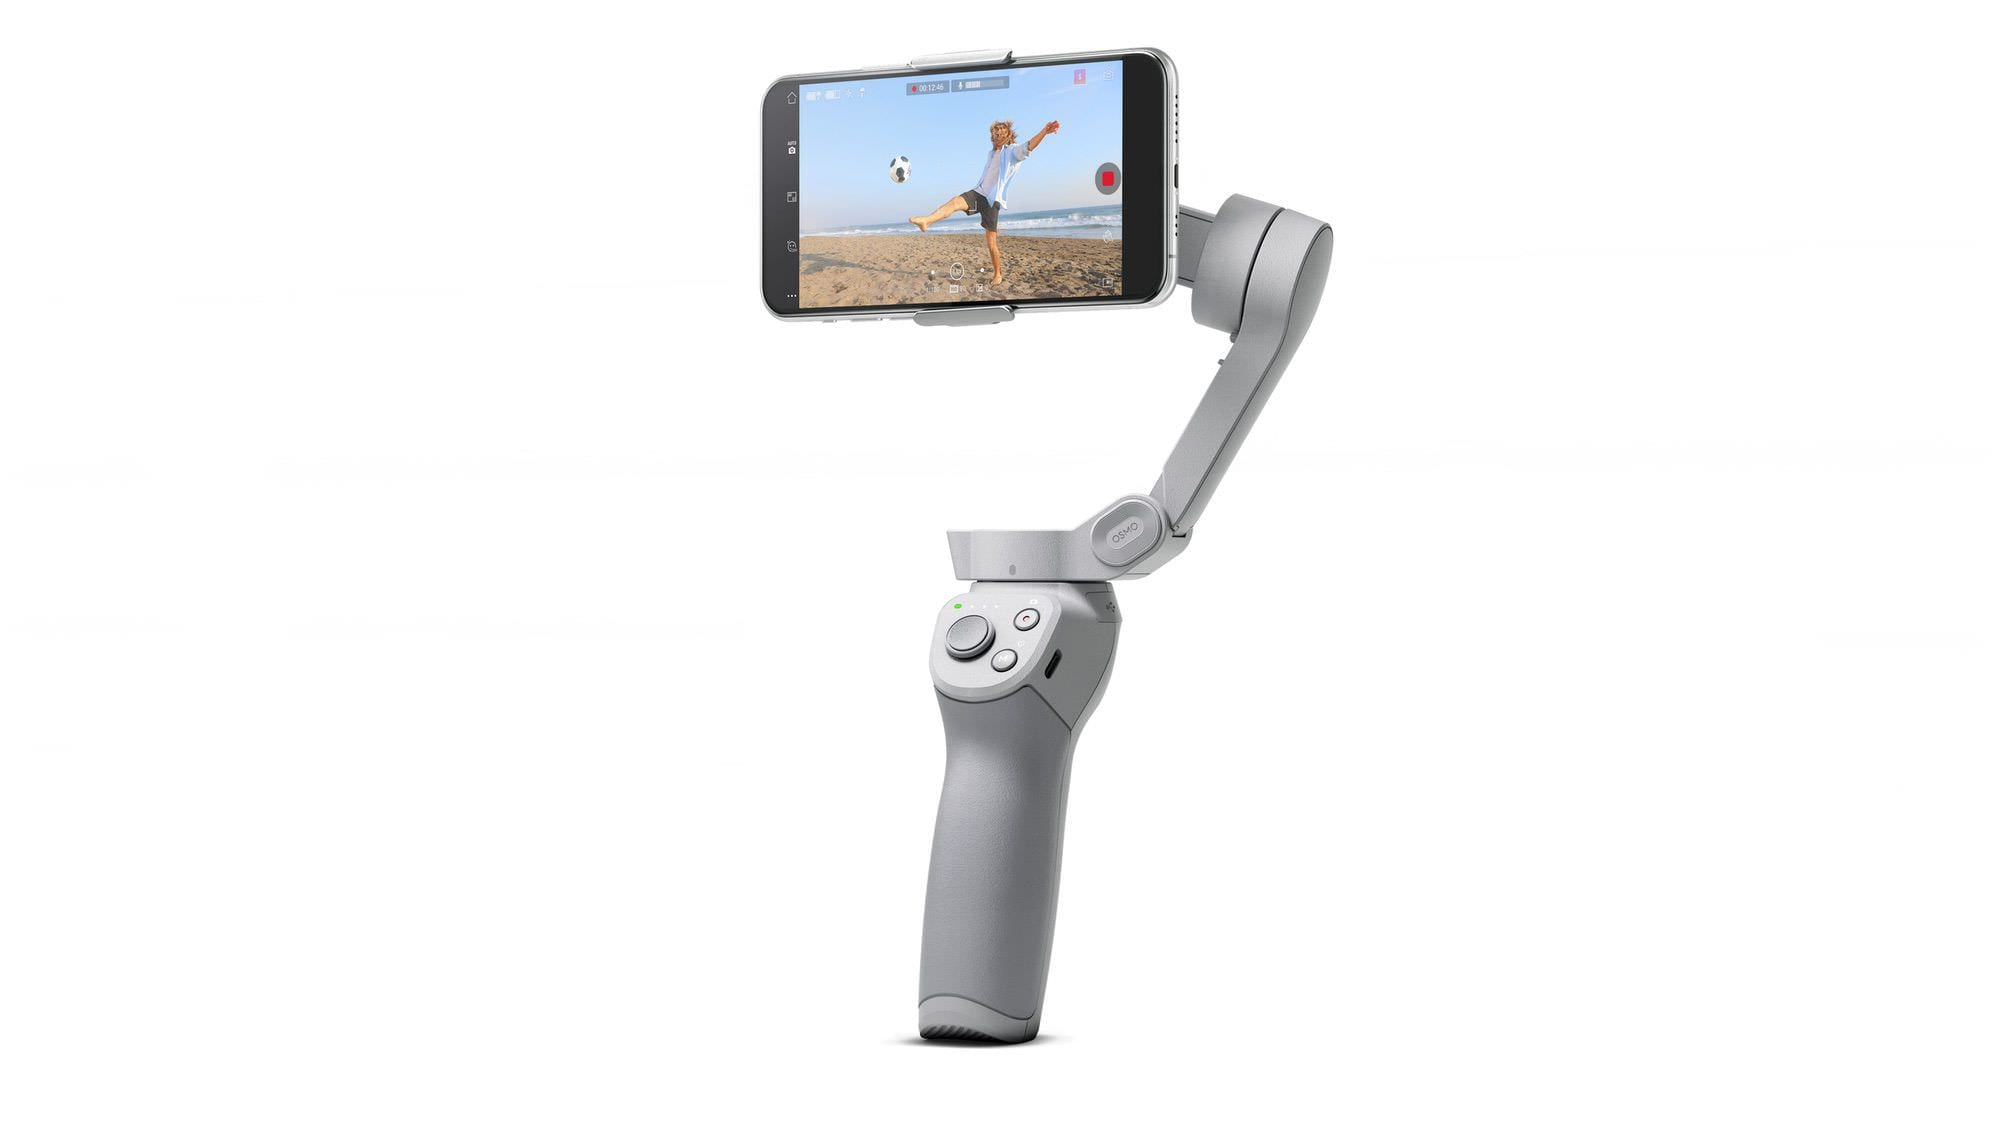 New DJI OM 4 smartphone stabilizer helps you capture those magnetic moments!